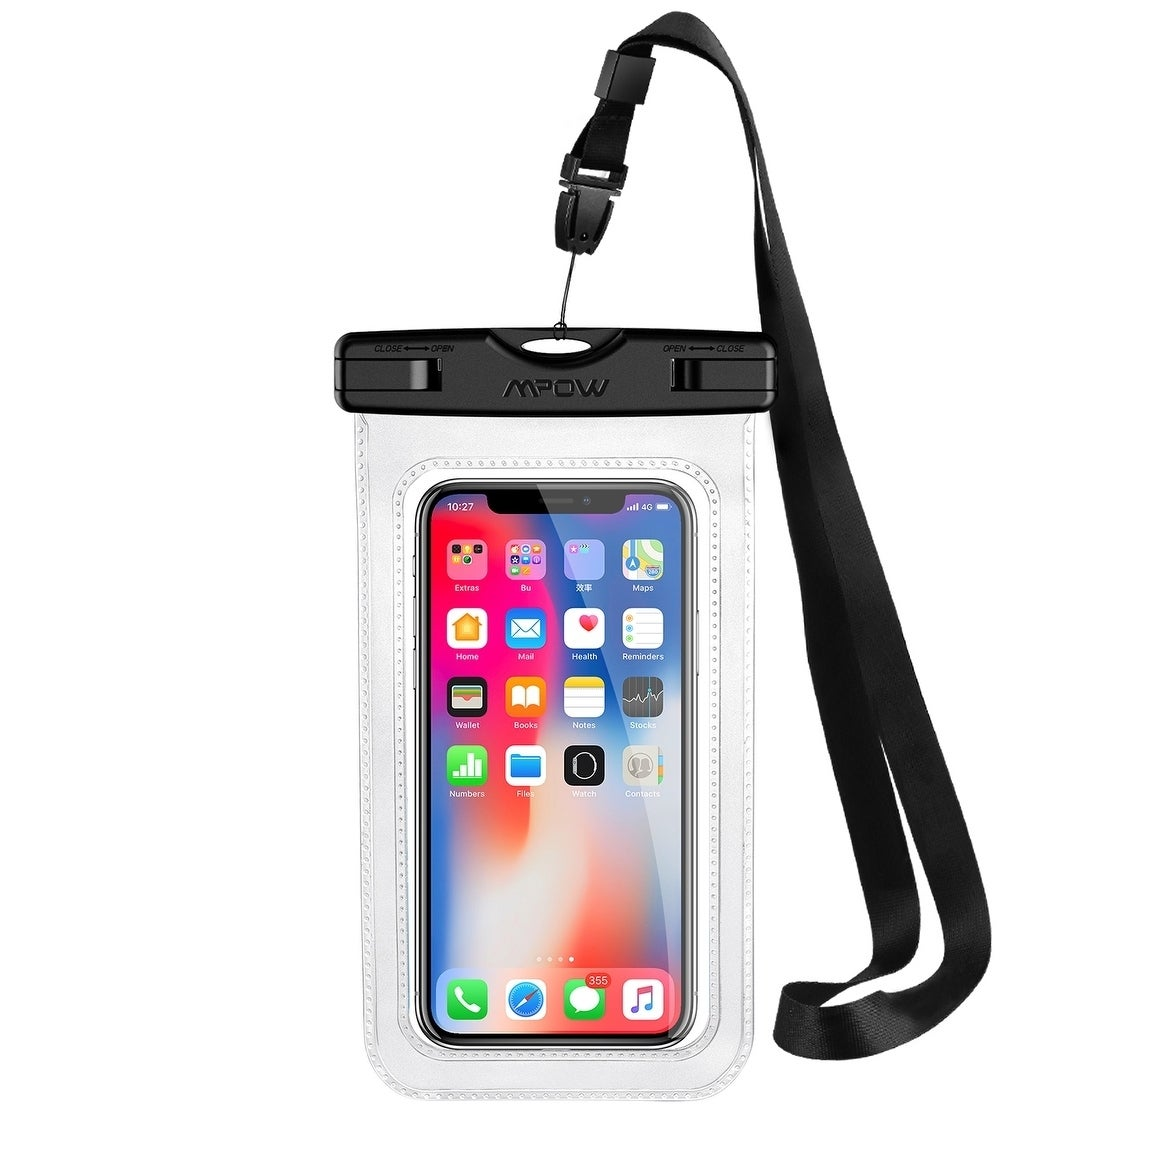 Mpow Waterproof Case Ipx 8 Cellphone Dry Bag Pouch For Iphone 6 6s 7 Plus Google Pixel